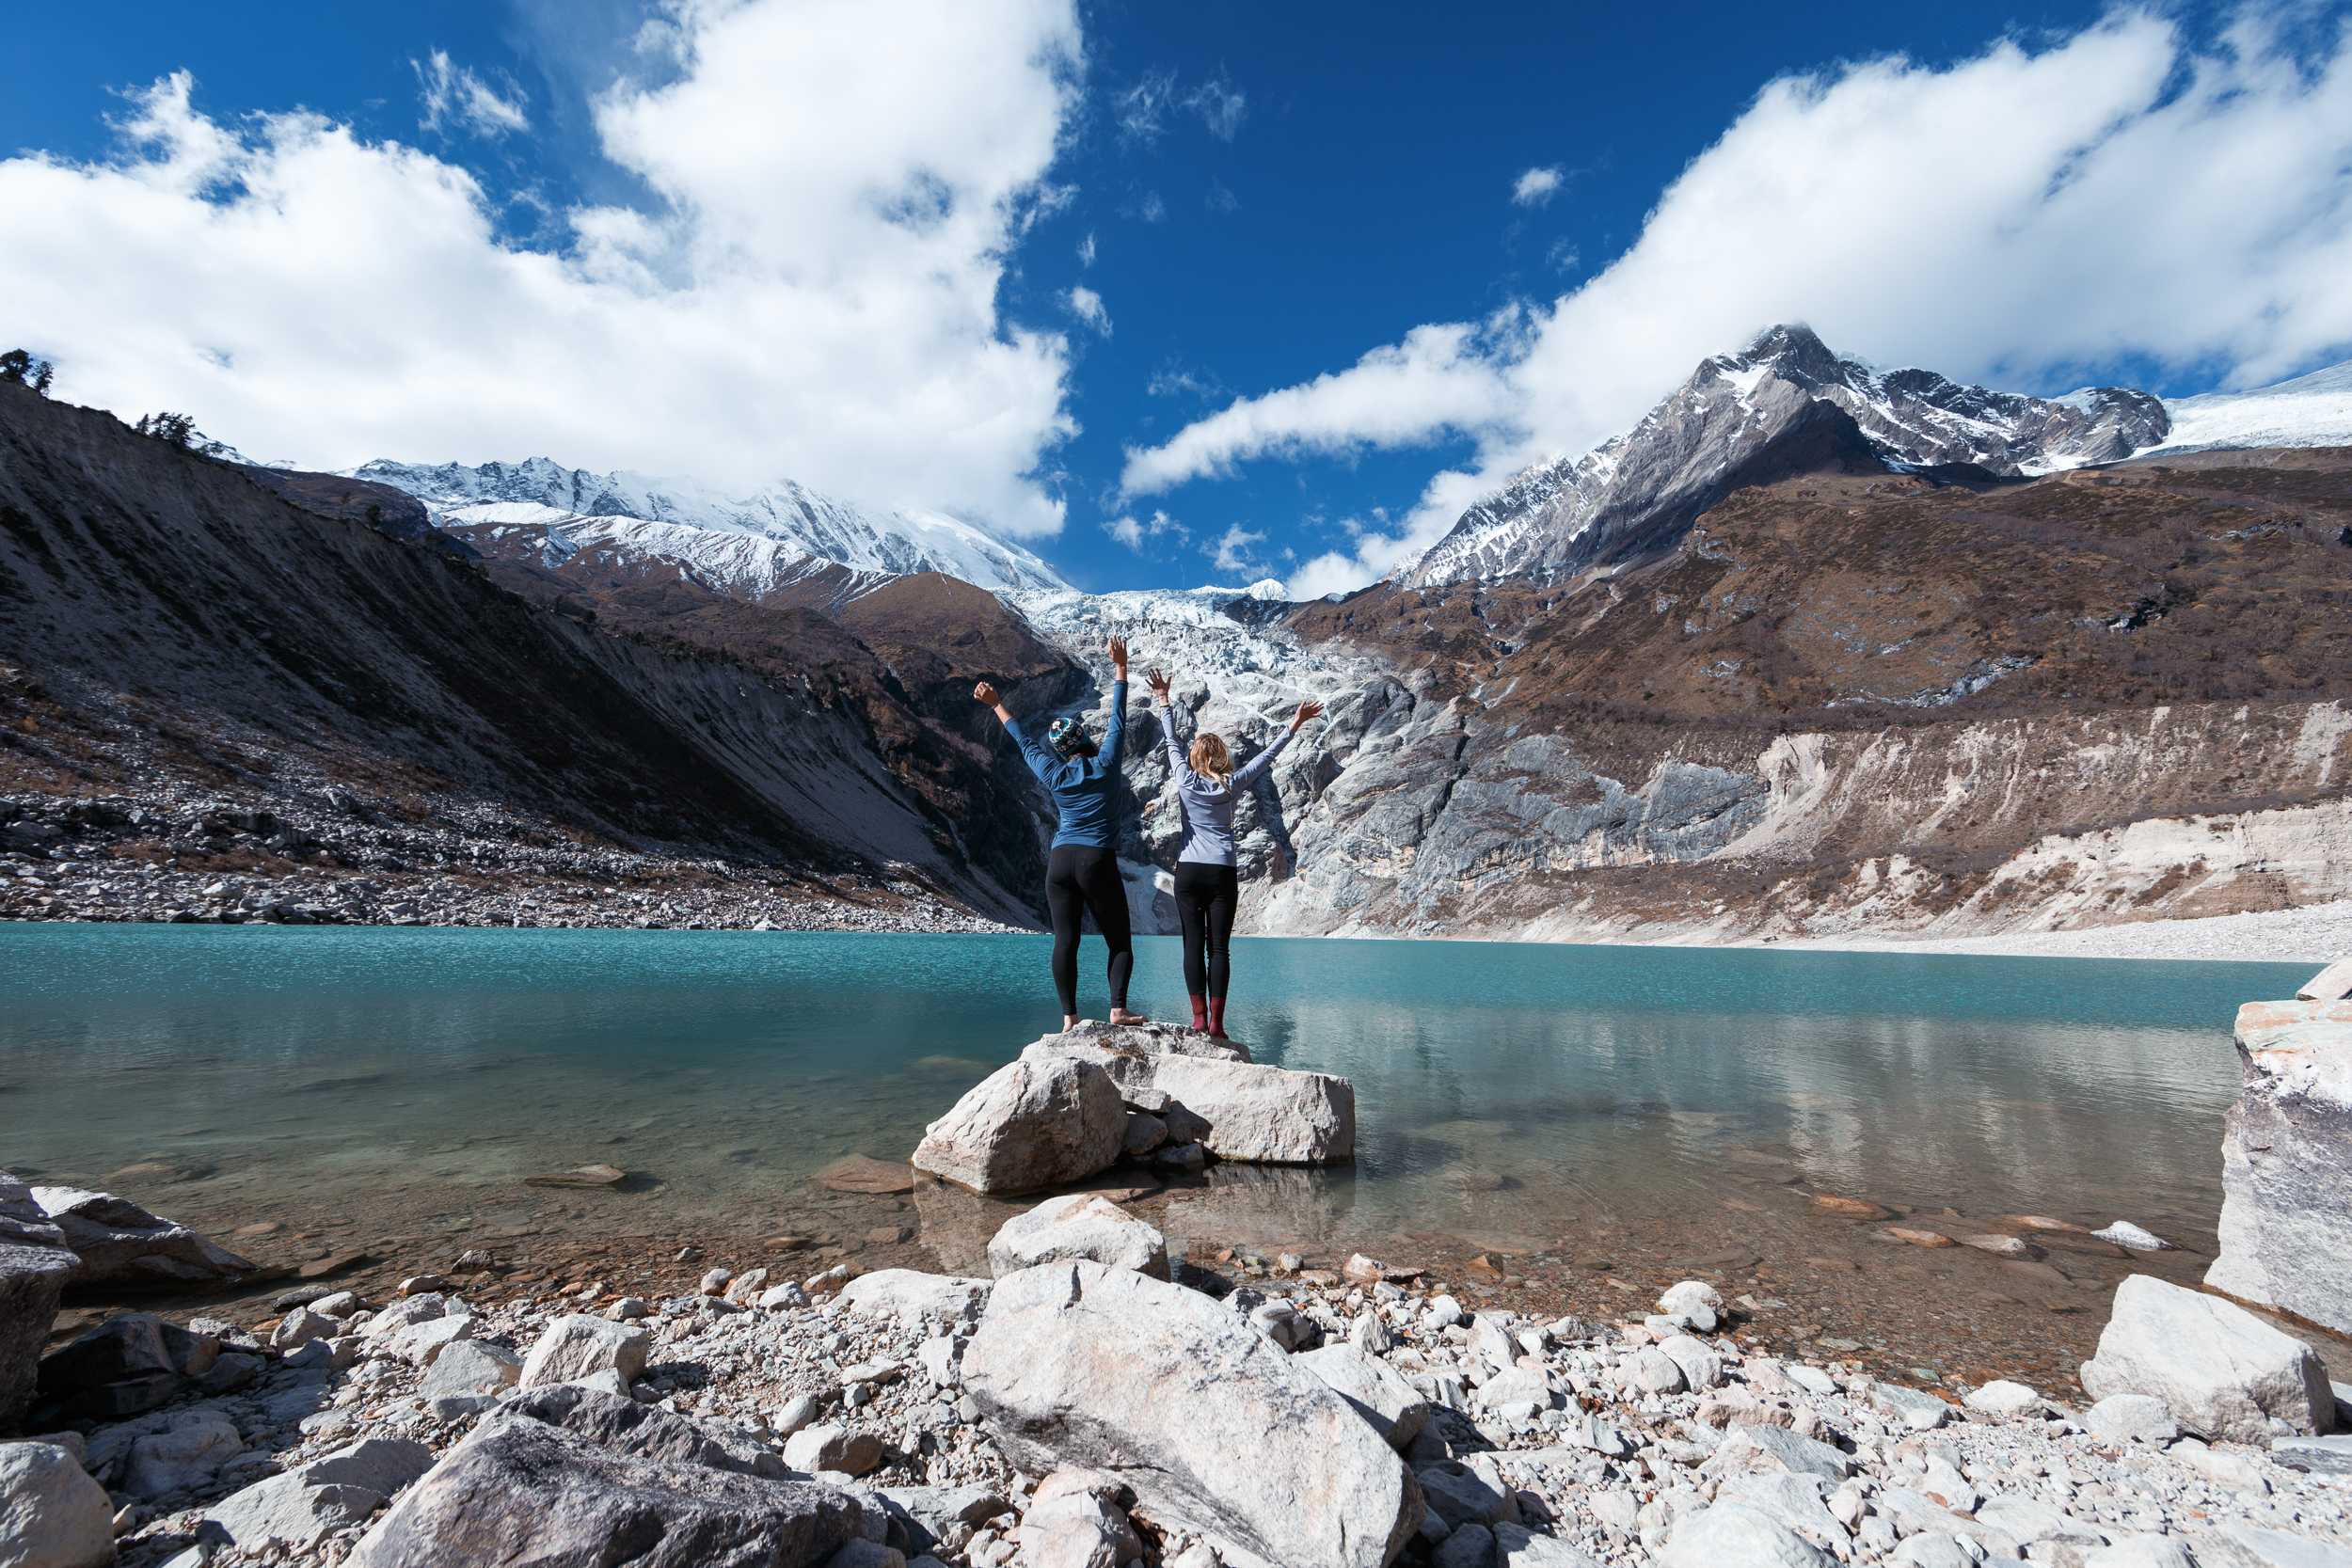 Ally and I taking in the insane landscape at Birendra Tal.